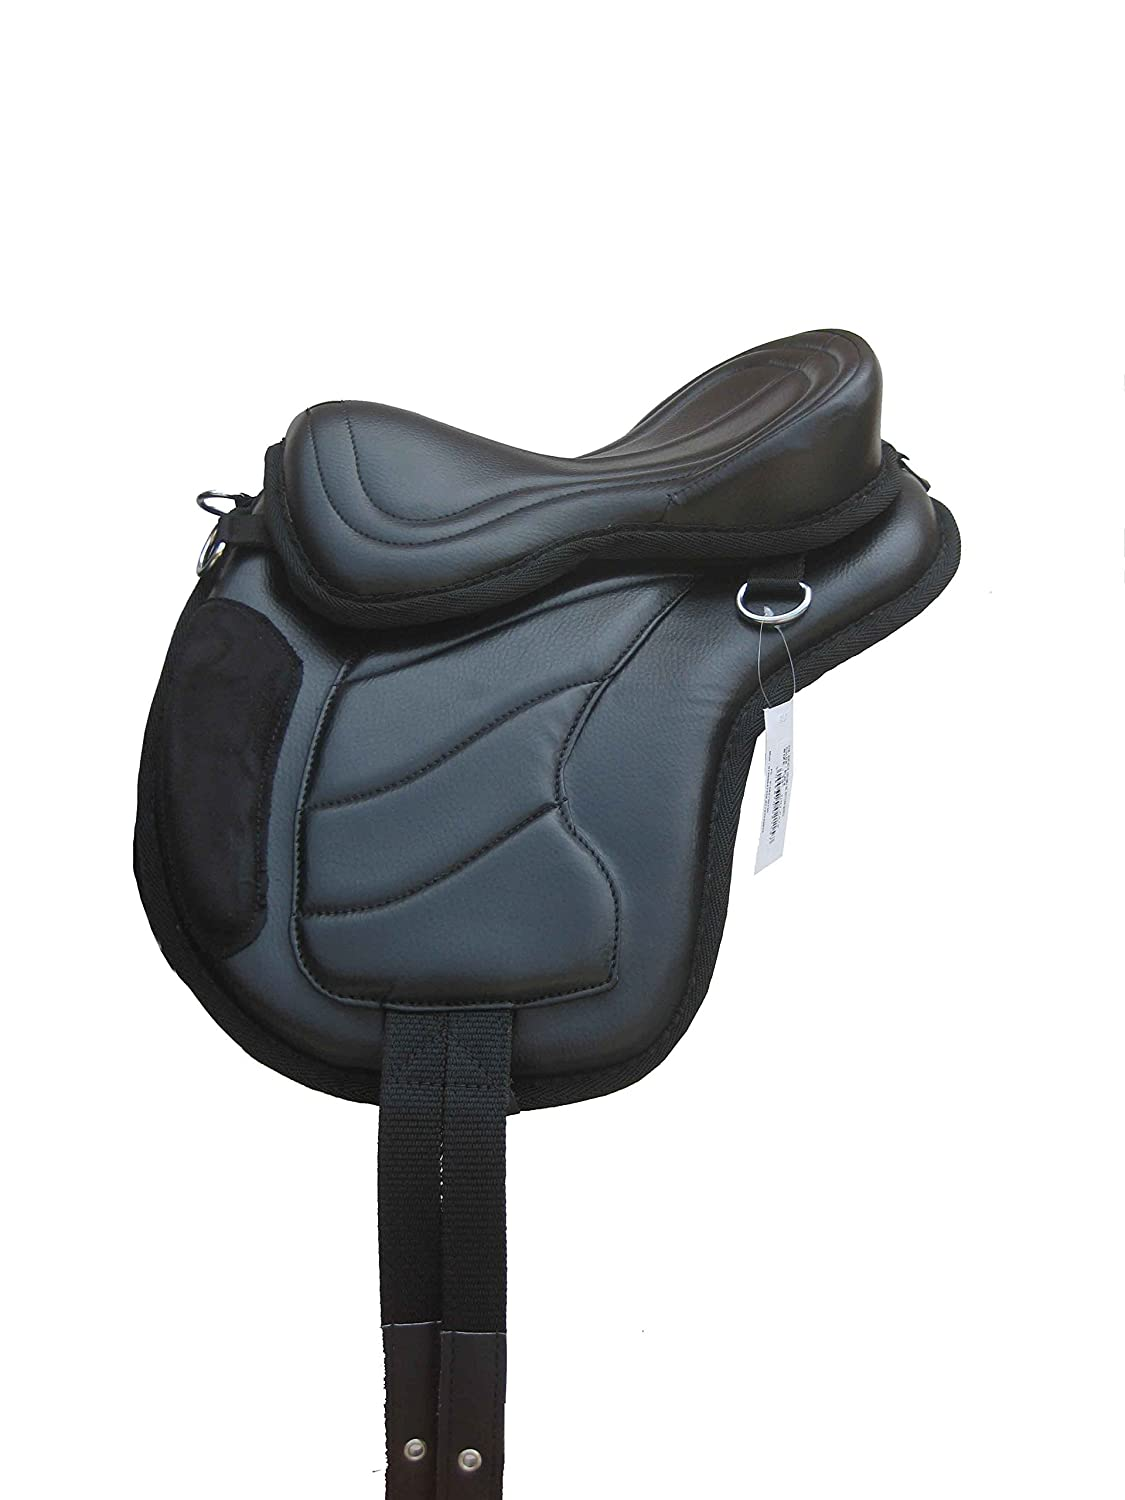 TintPets 13 TOP QUALITY BRANDED SYNTHETIC HORSE TREELESS SADDLE IN BLACK COLOR, FREE GIRTH